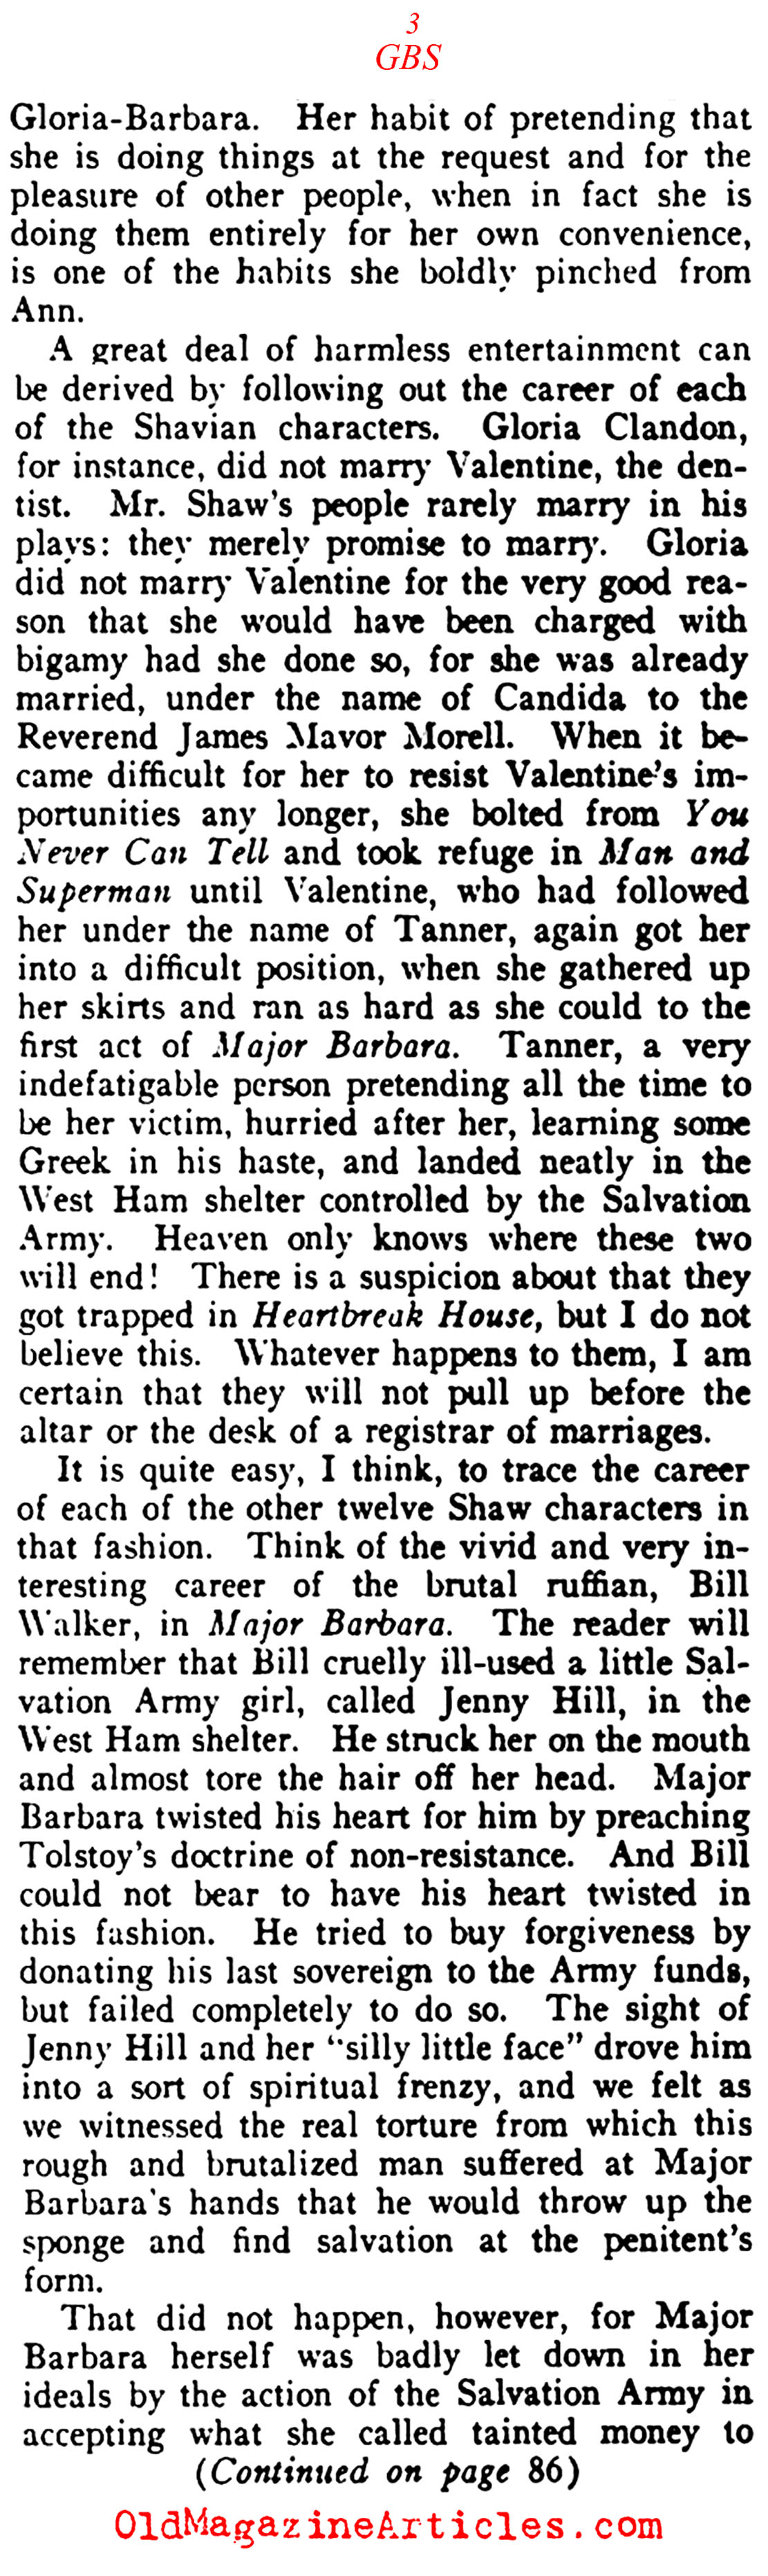 George Bernard Shaw and Literary Recycling (Vanity Fair, 1921)